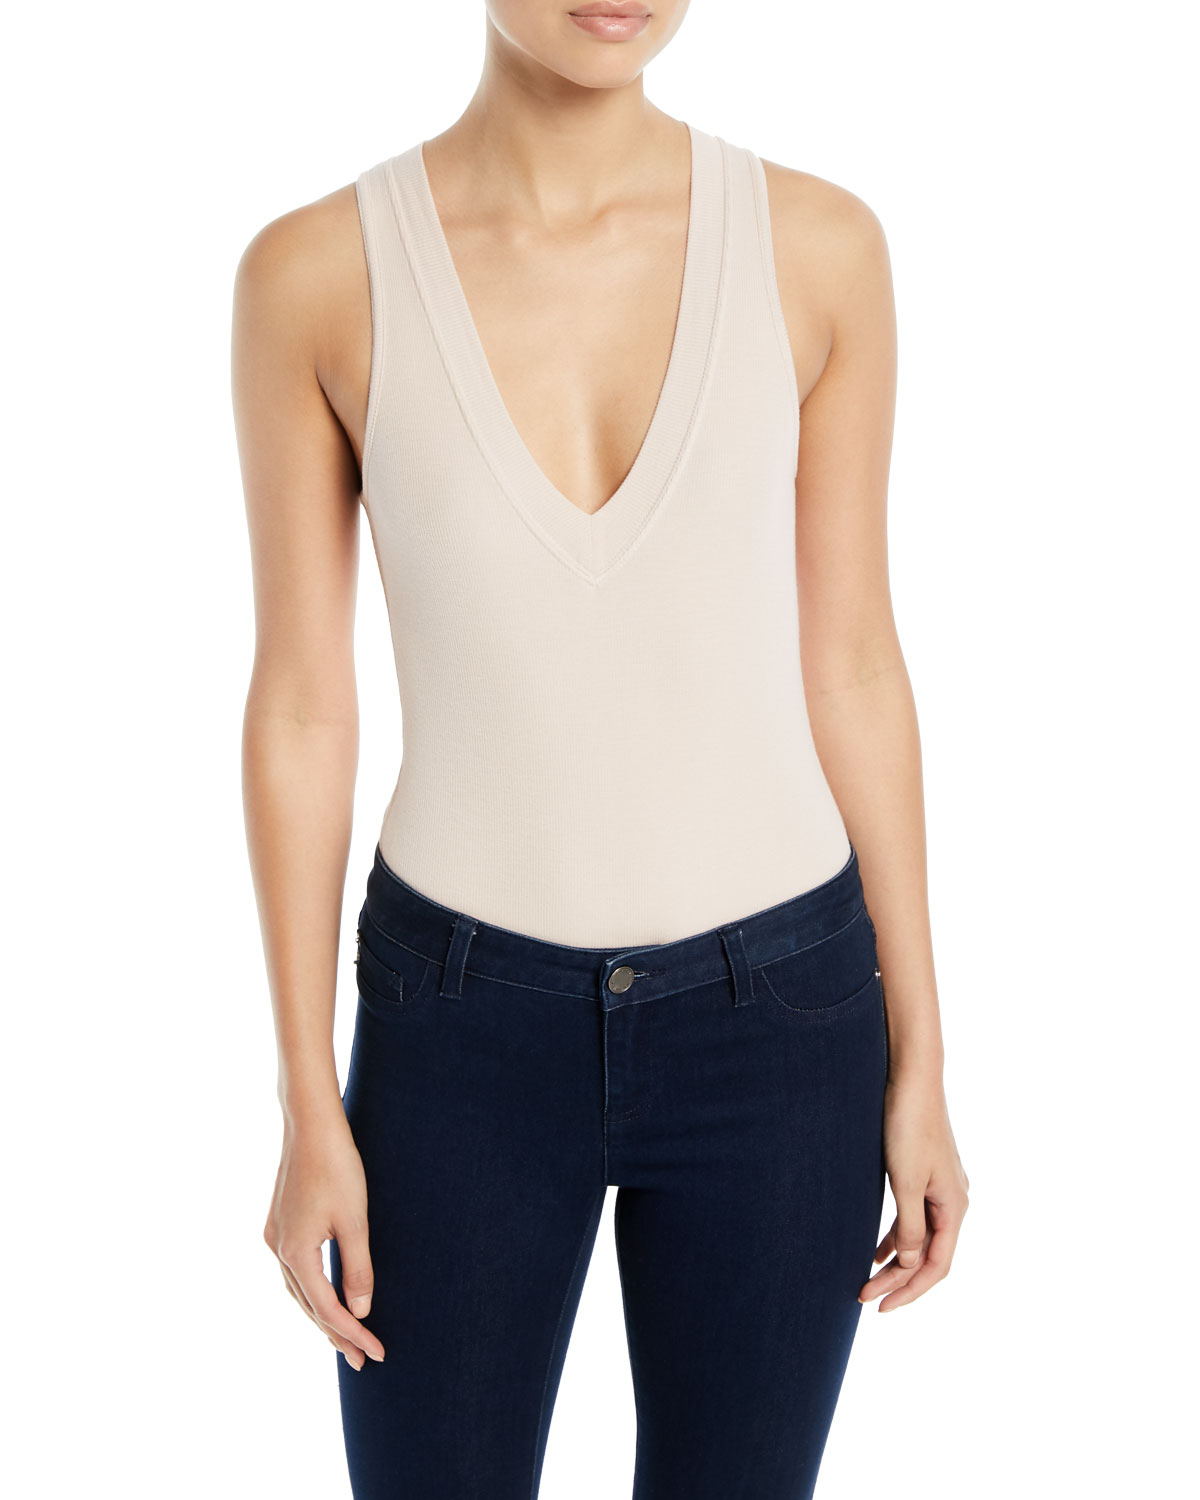 Ribbed Plunge-Neck High-Leg Bodysuit